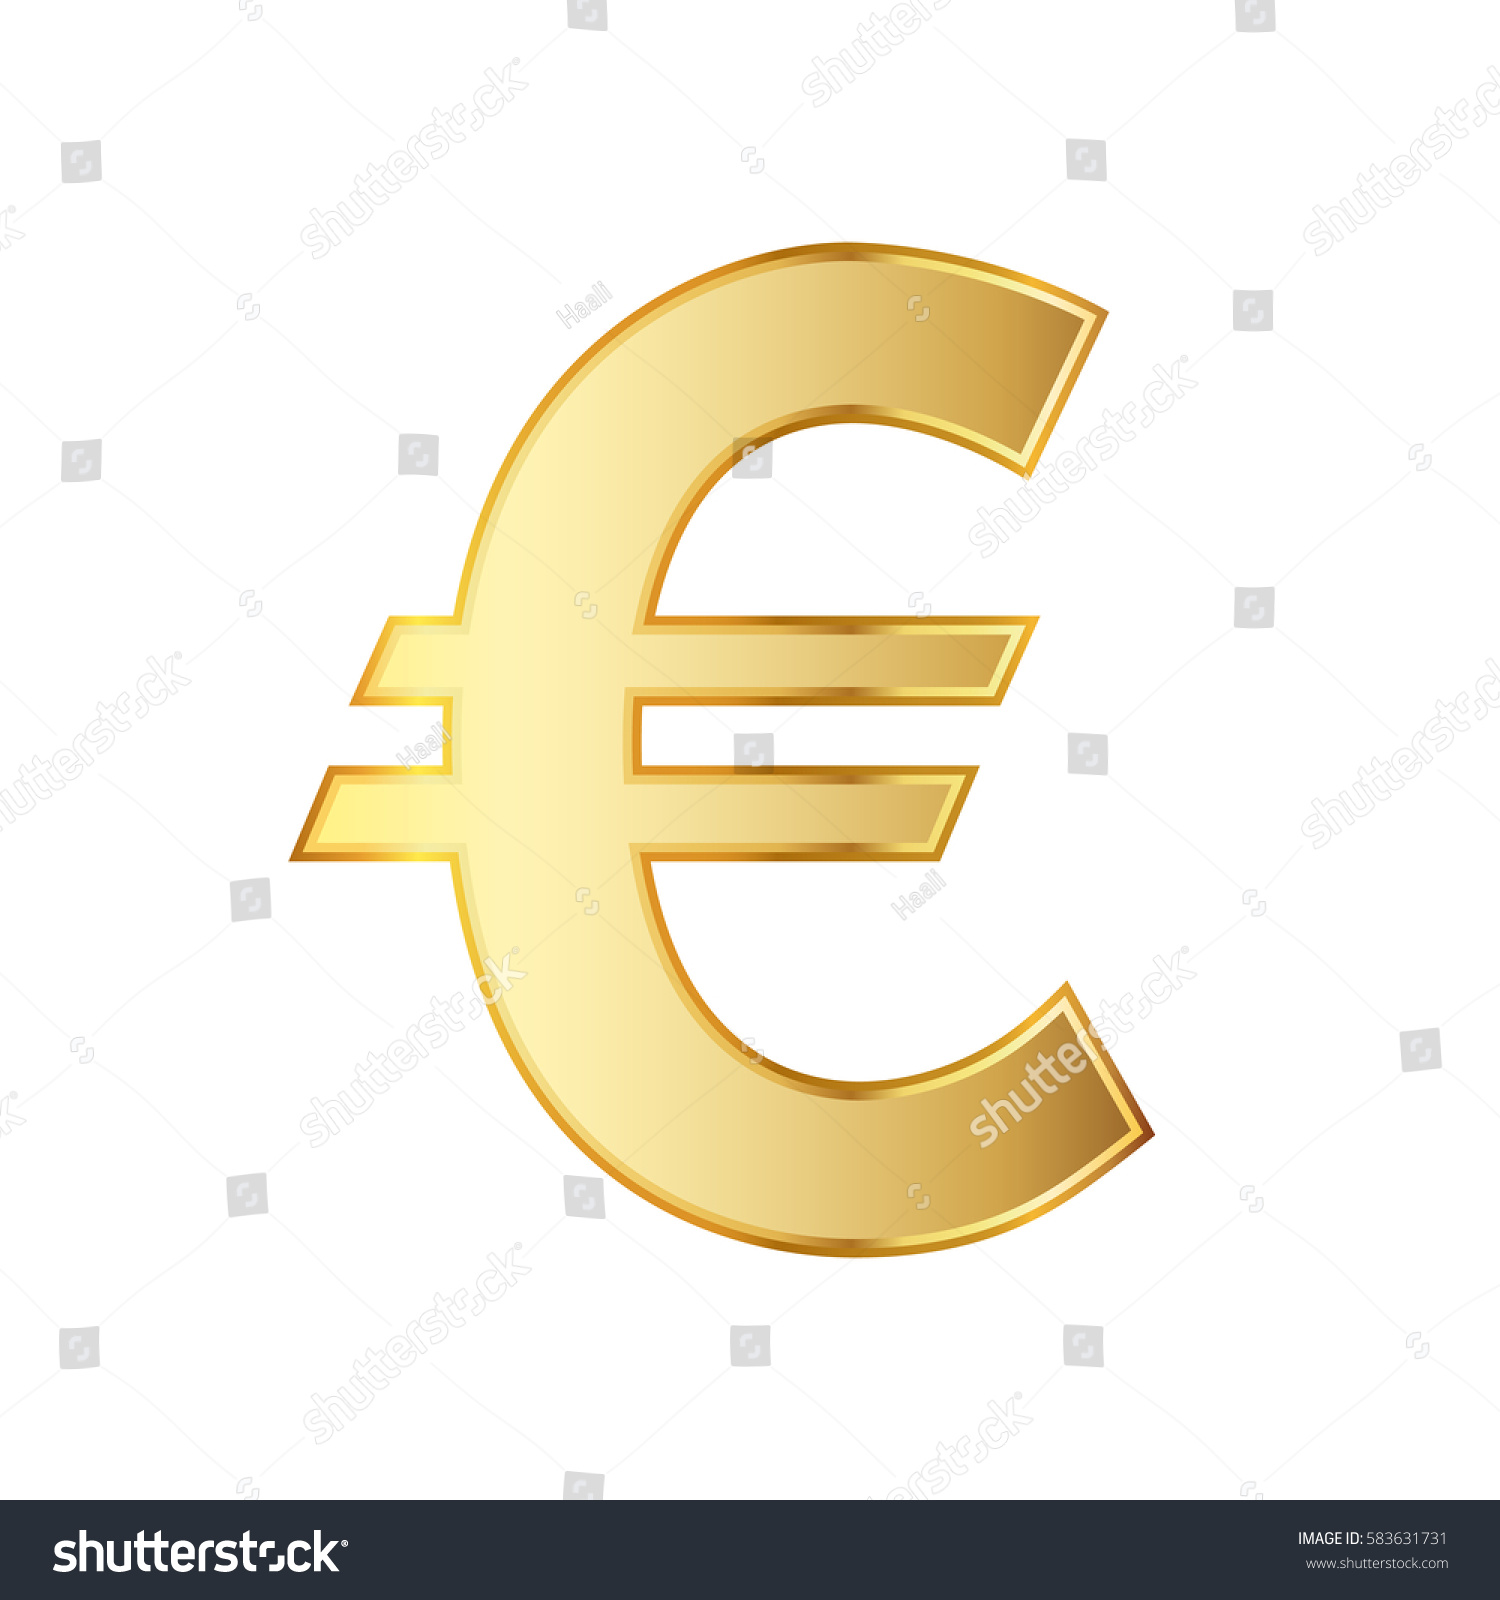 Golden Symbol Of The Euro Currency Vector Illustration Golden Euro